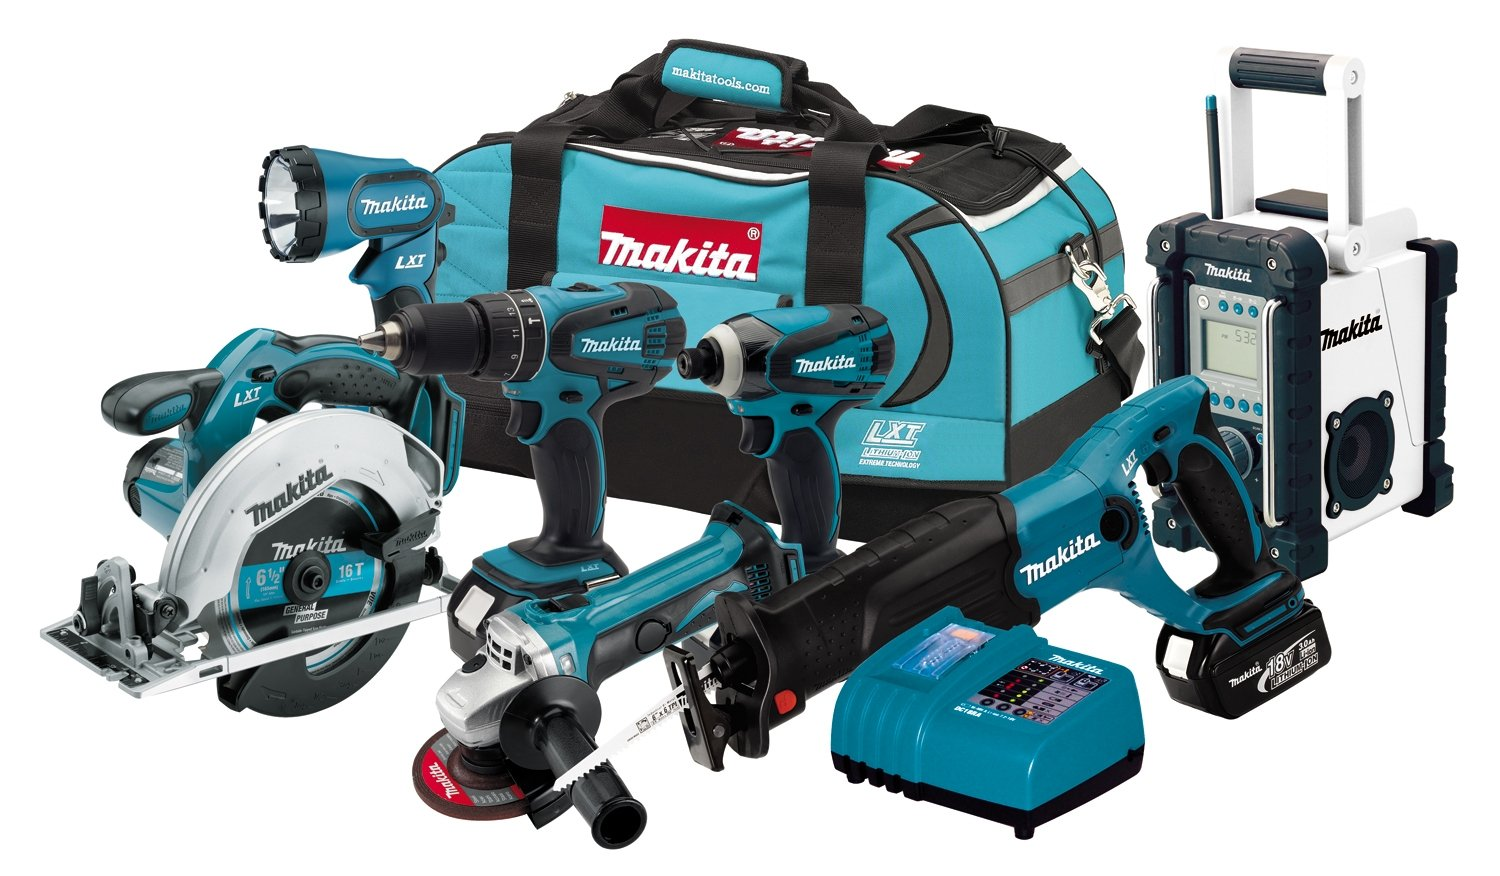 makita lxt702 18 volt lxt lithium ion cordless 7 piece. Black Bedroom Furniture Sets. Home Design Ideas